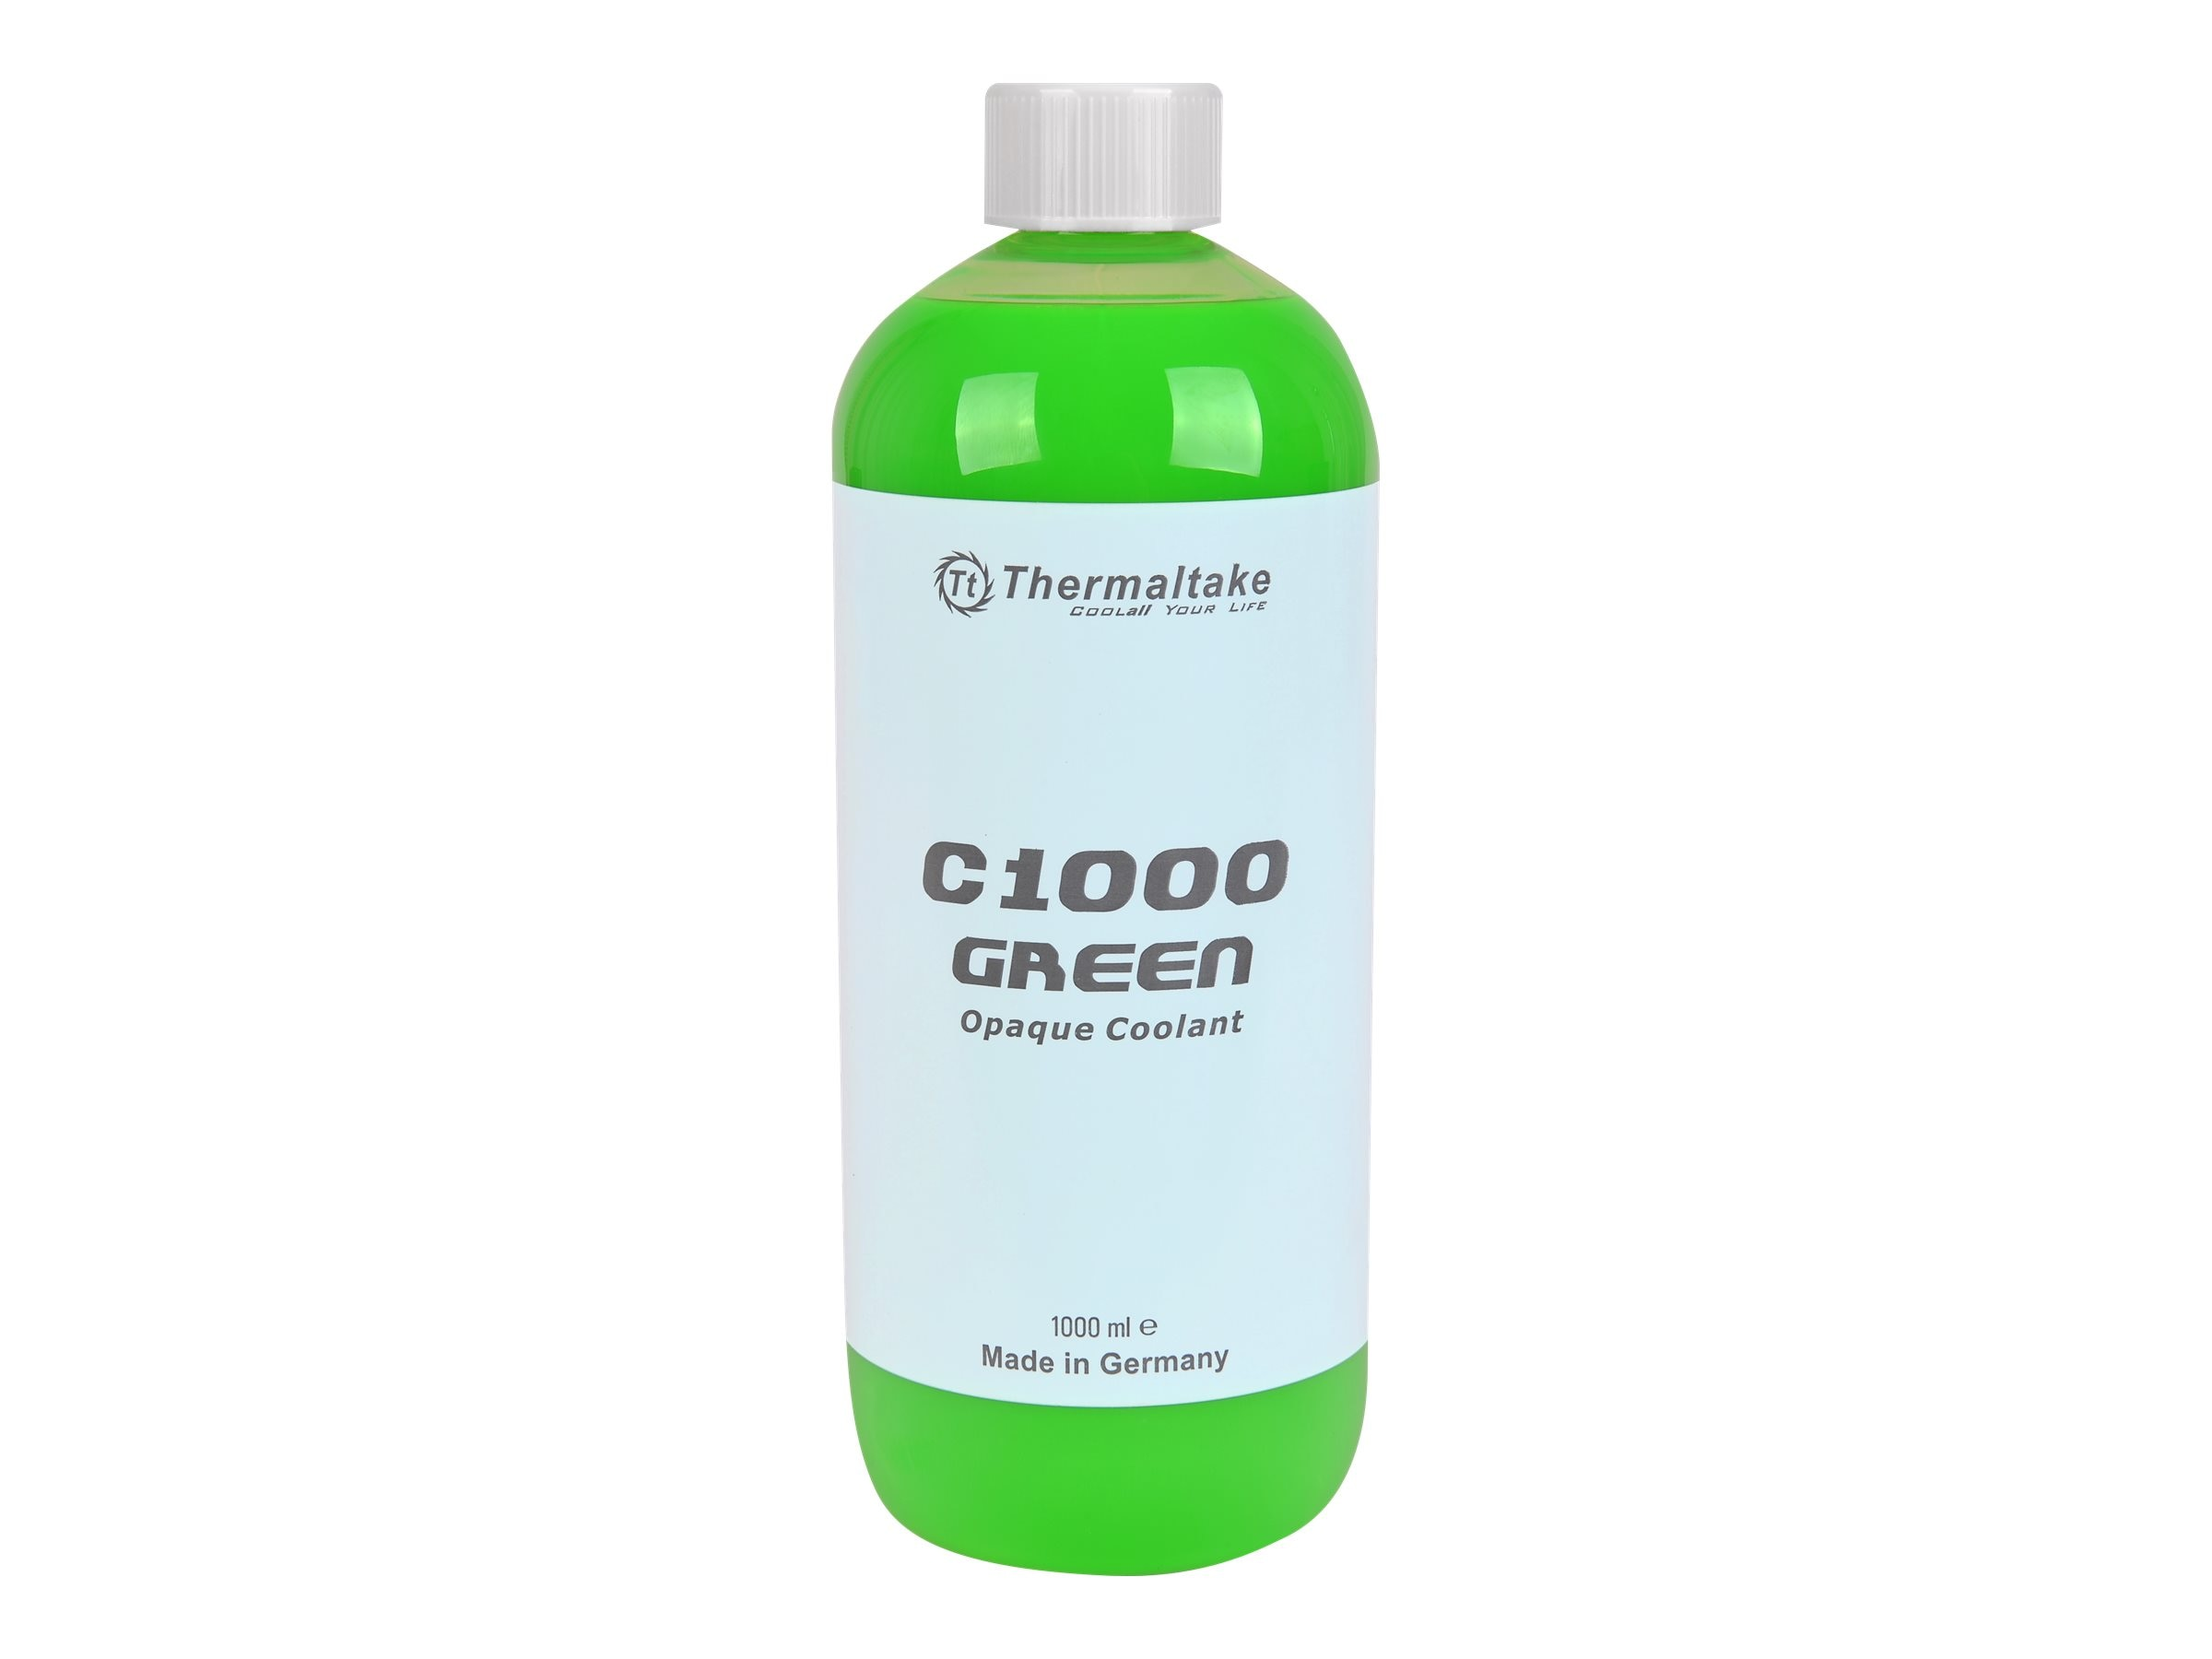 Thermaltake C1000 Opaque Liquid Coolant, Green